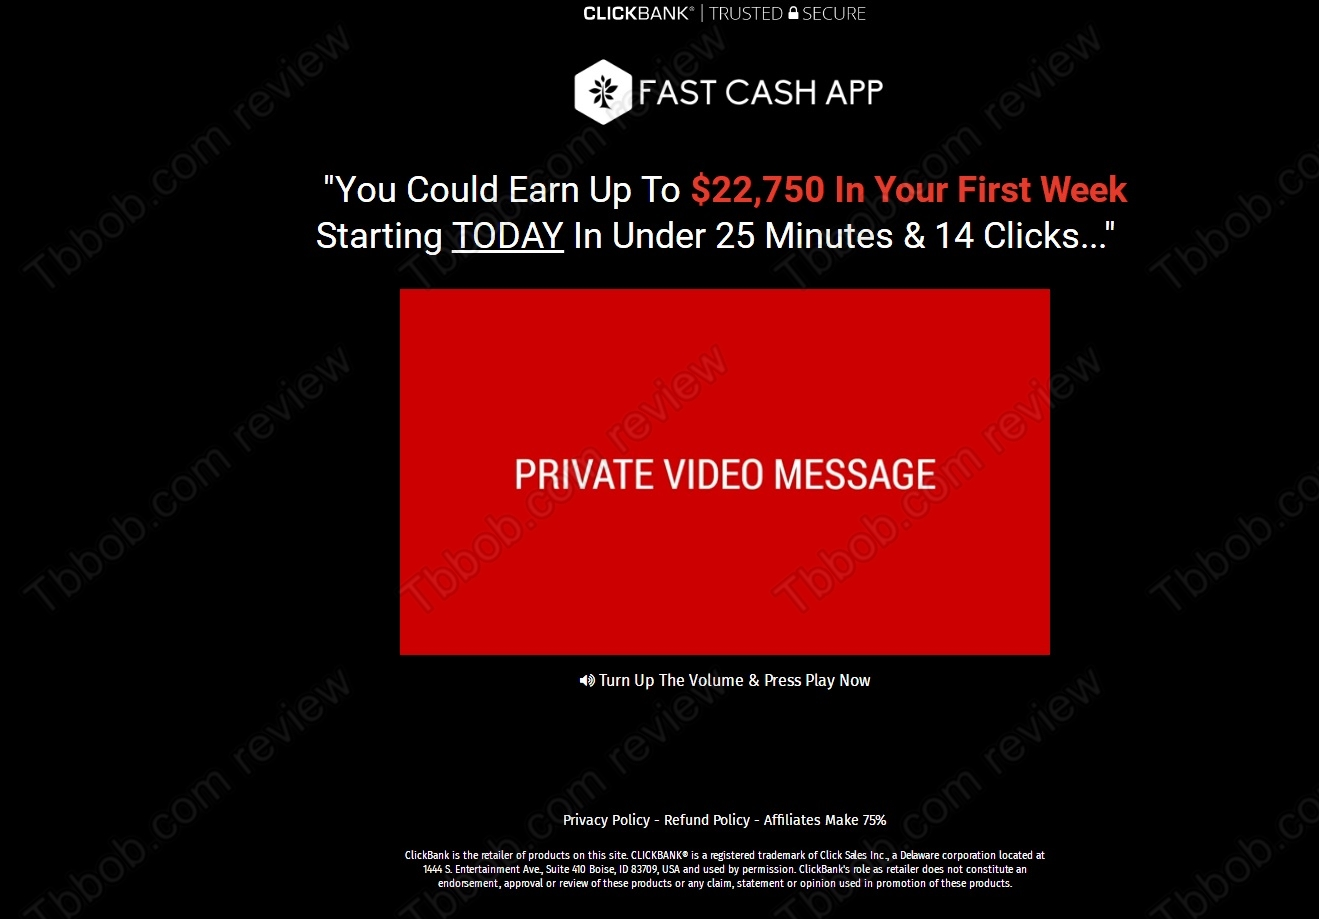 BEWARE of the Fast Cash App – review